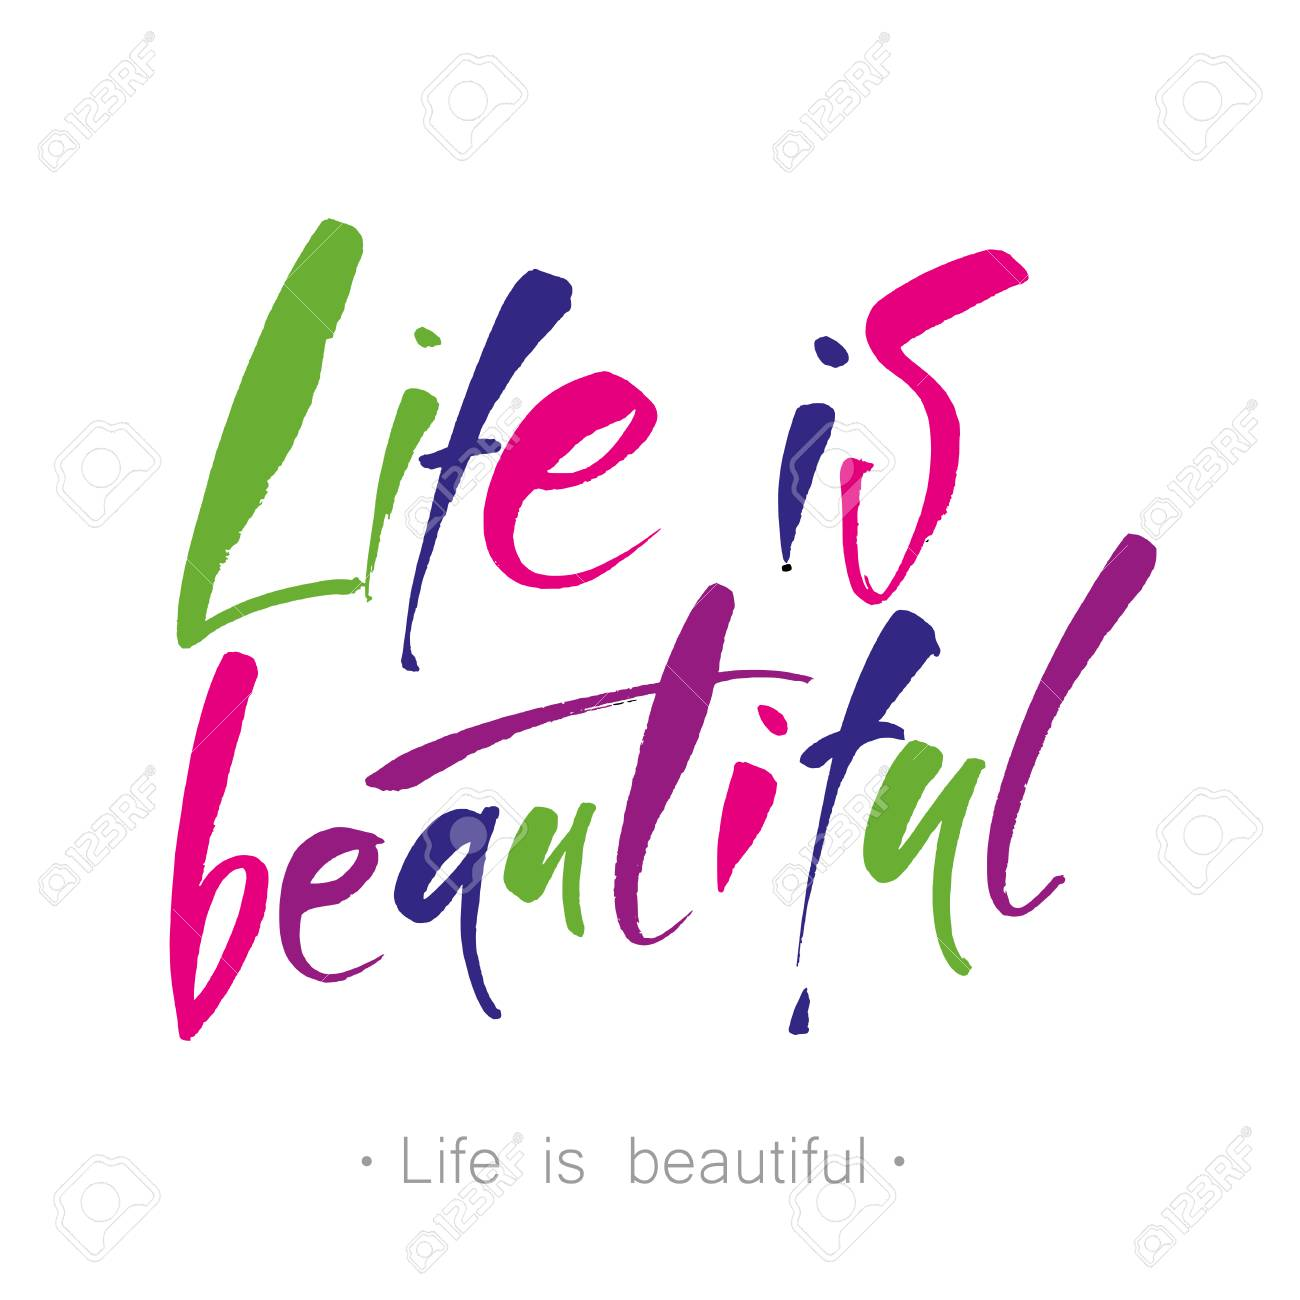 Life is beautiful calligraphy phrase for greetings cards and life is beautiful calligraphy phrase for greetings cards and posters inspirational quote vector m4hsunfo